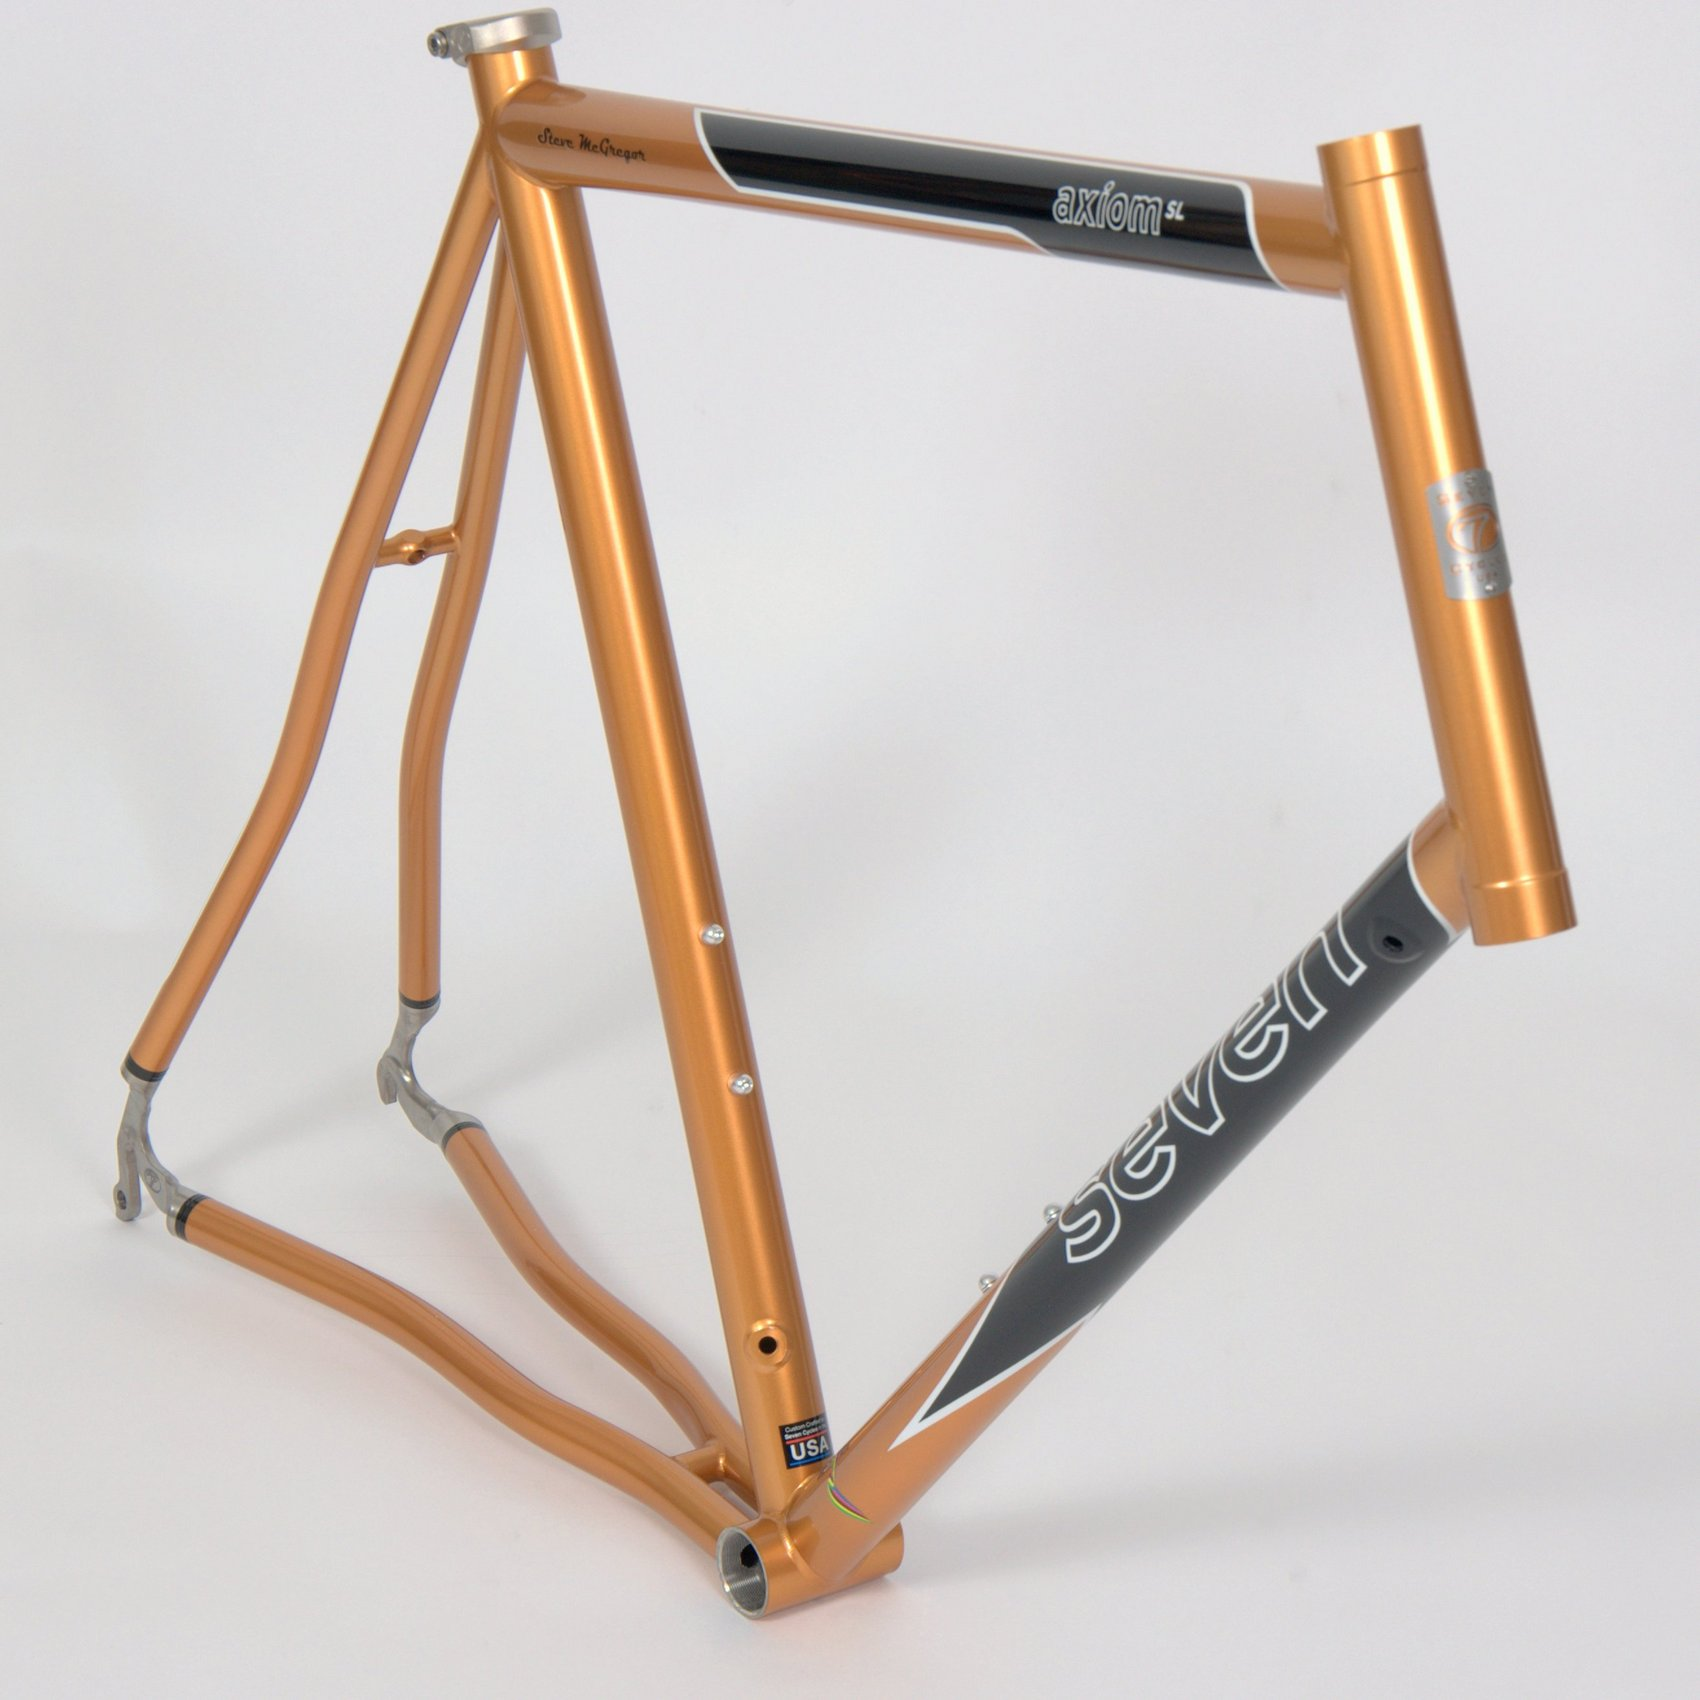 gran fondo scheme in custom copper, gloss black, and snow white (custom colors available at an additional cost)